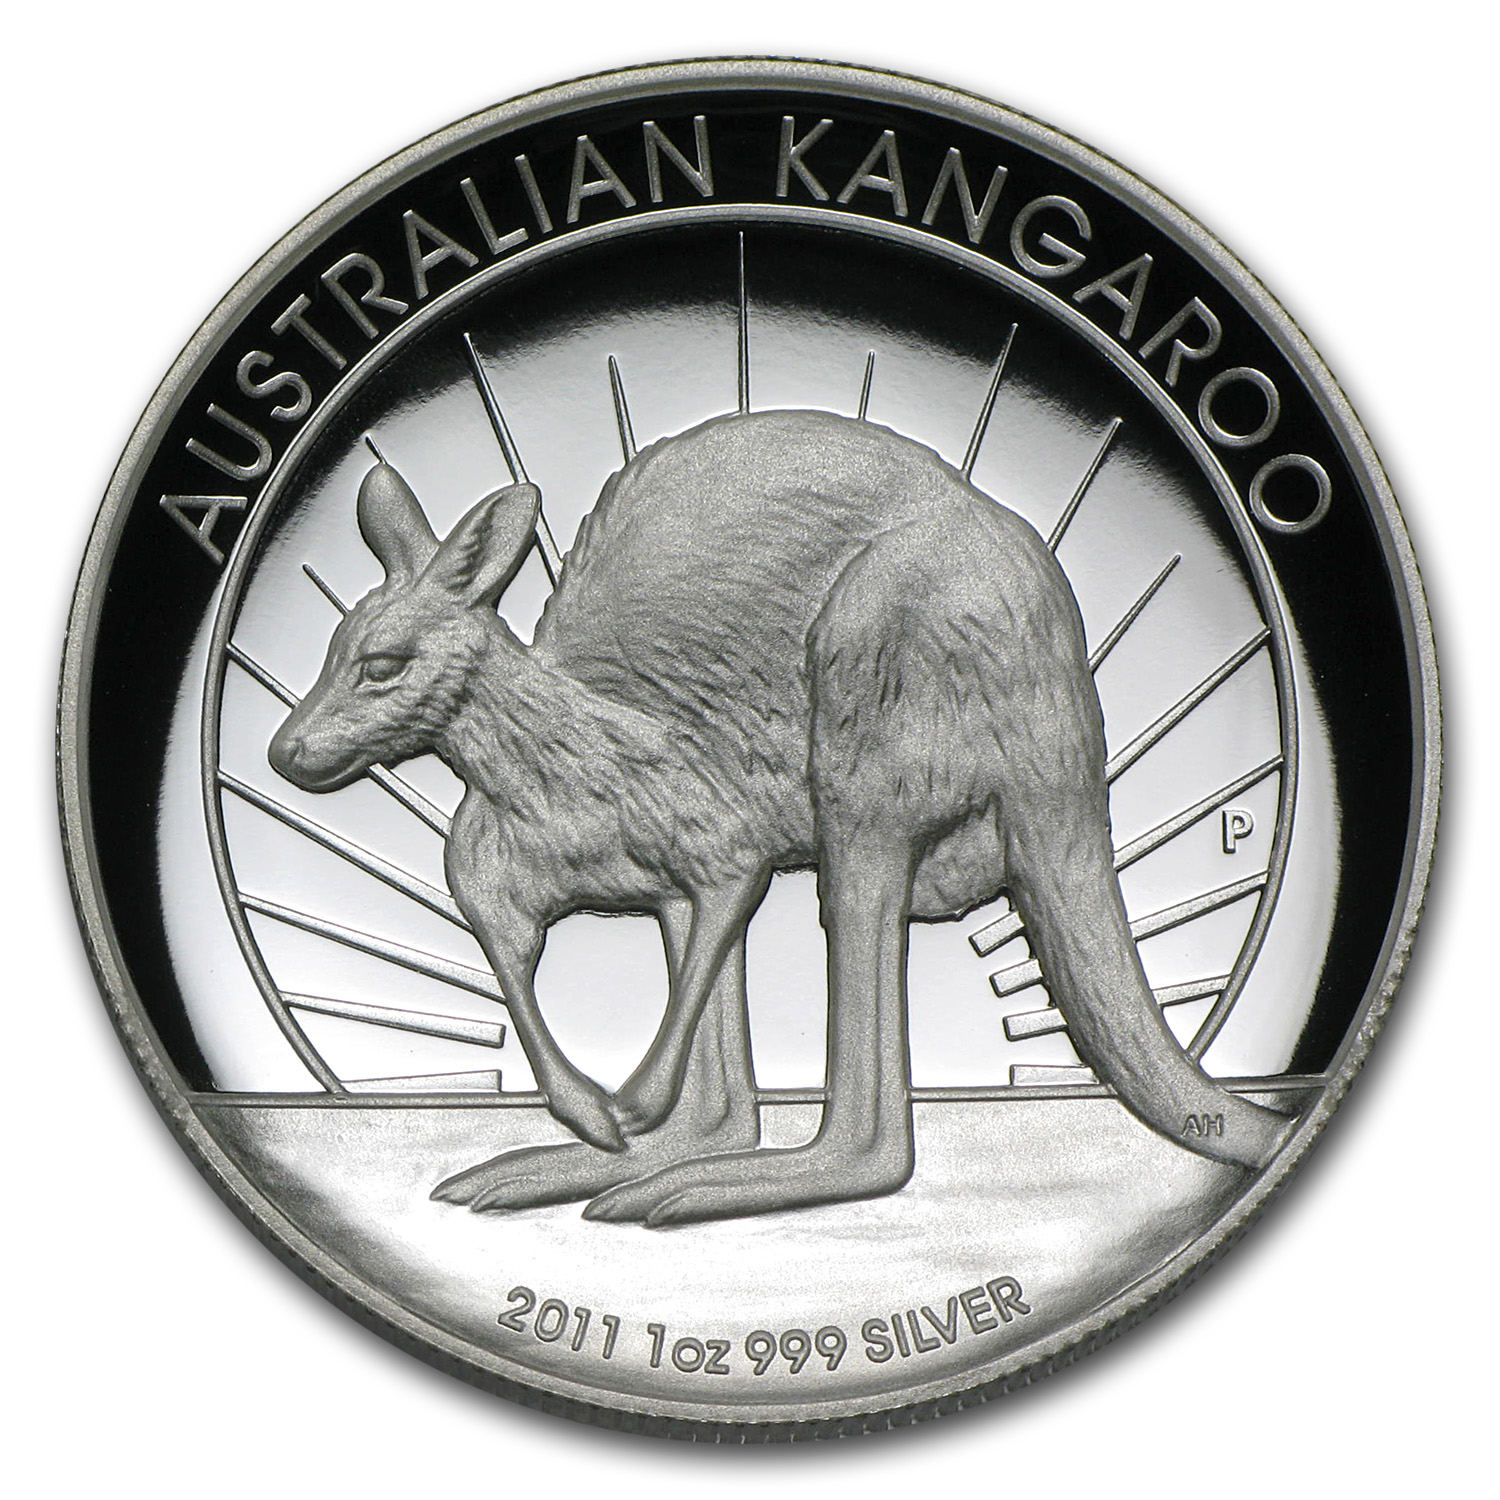 2011 Australia 1 oz Silver Kangaroo Proof (High Relief)